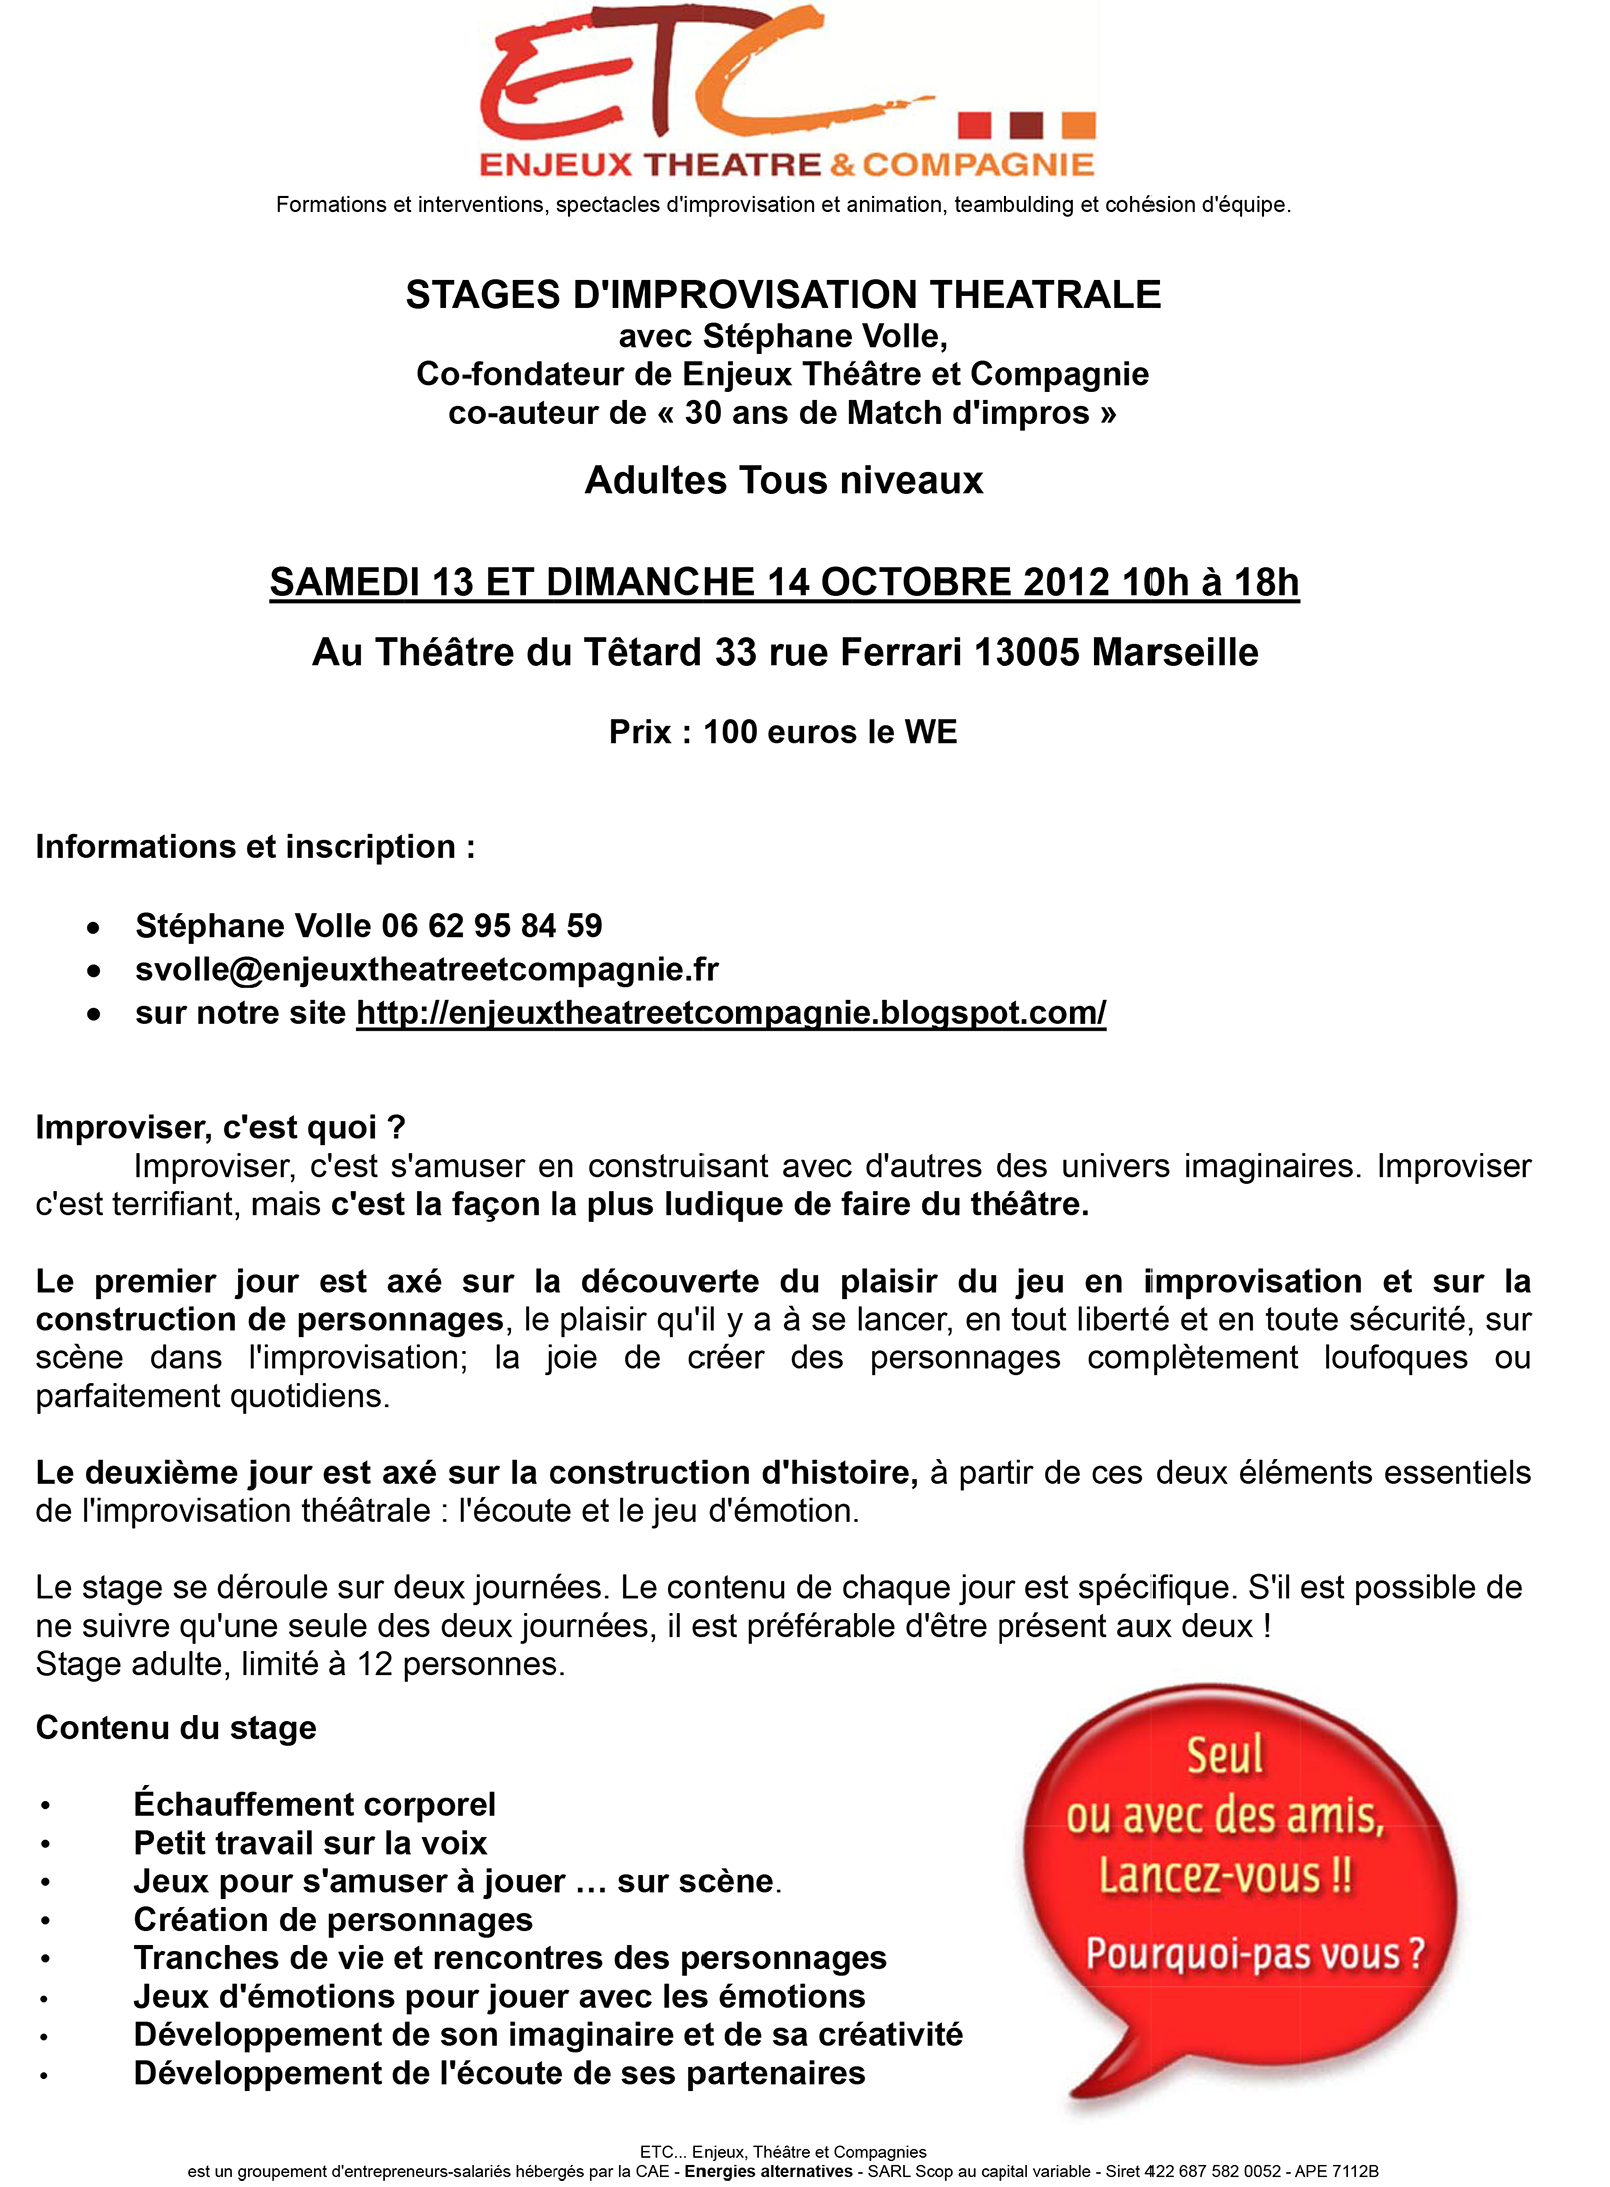 cours-stage-improvisation-theatre-du-tetard-marseille-diner-spectacle-octobre-2012